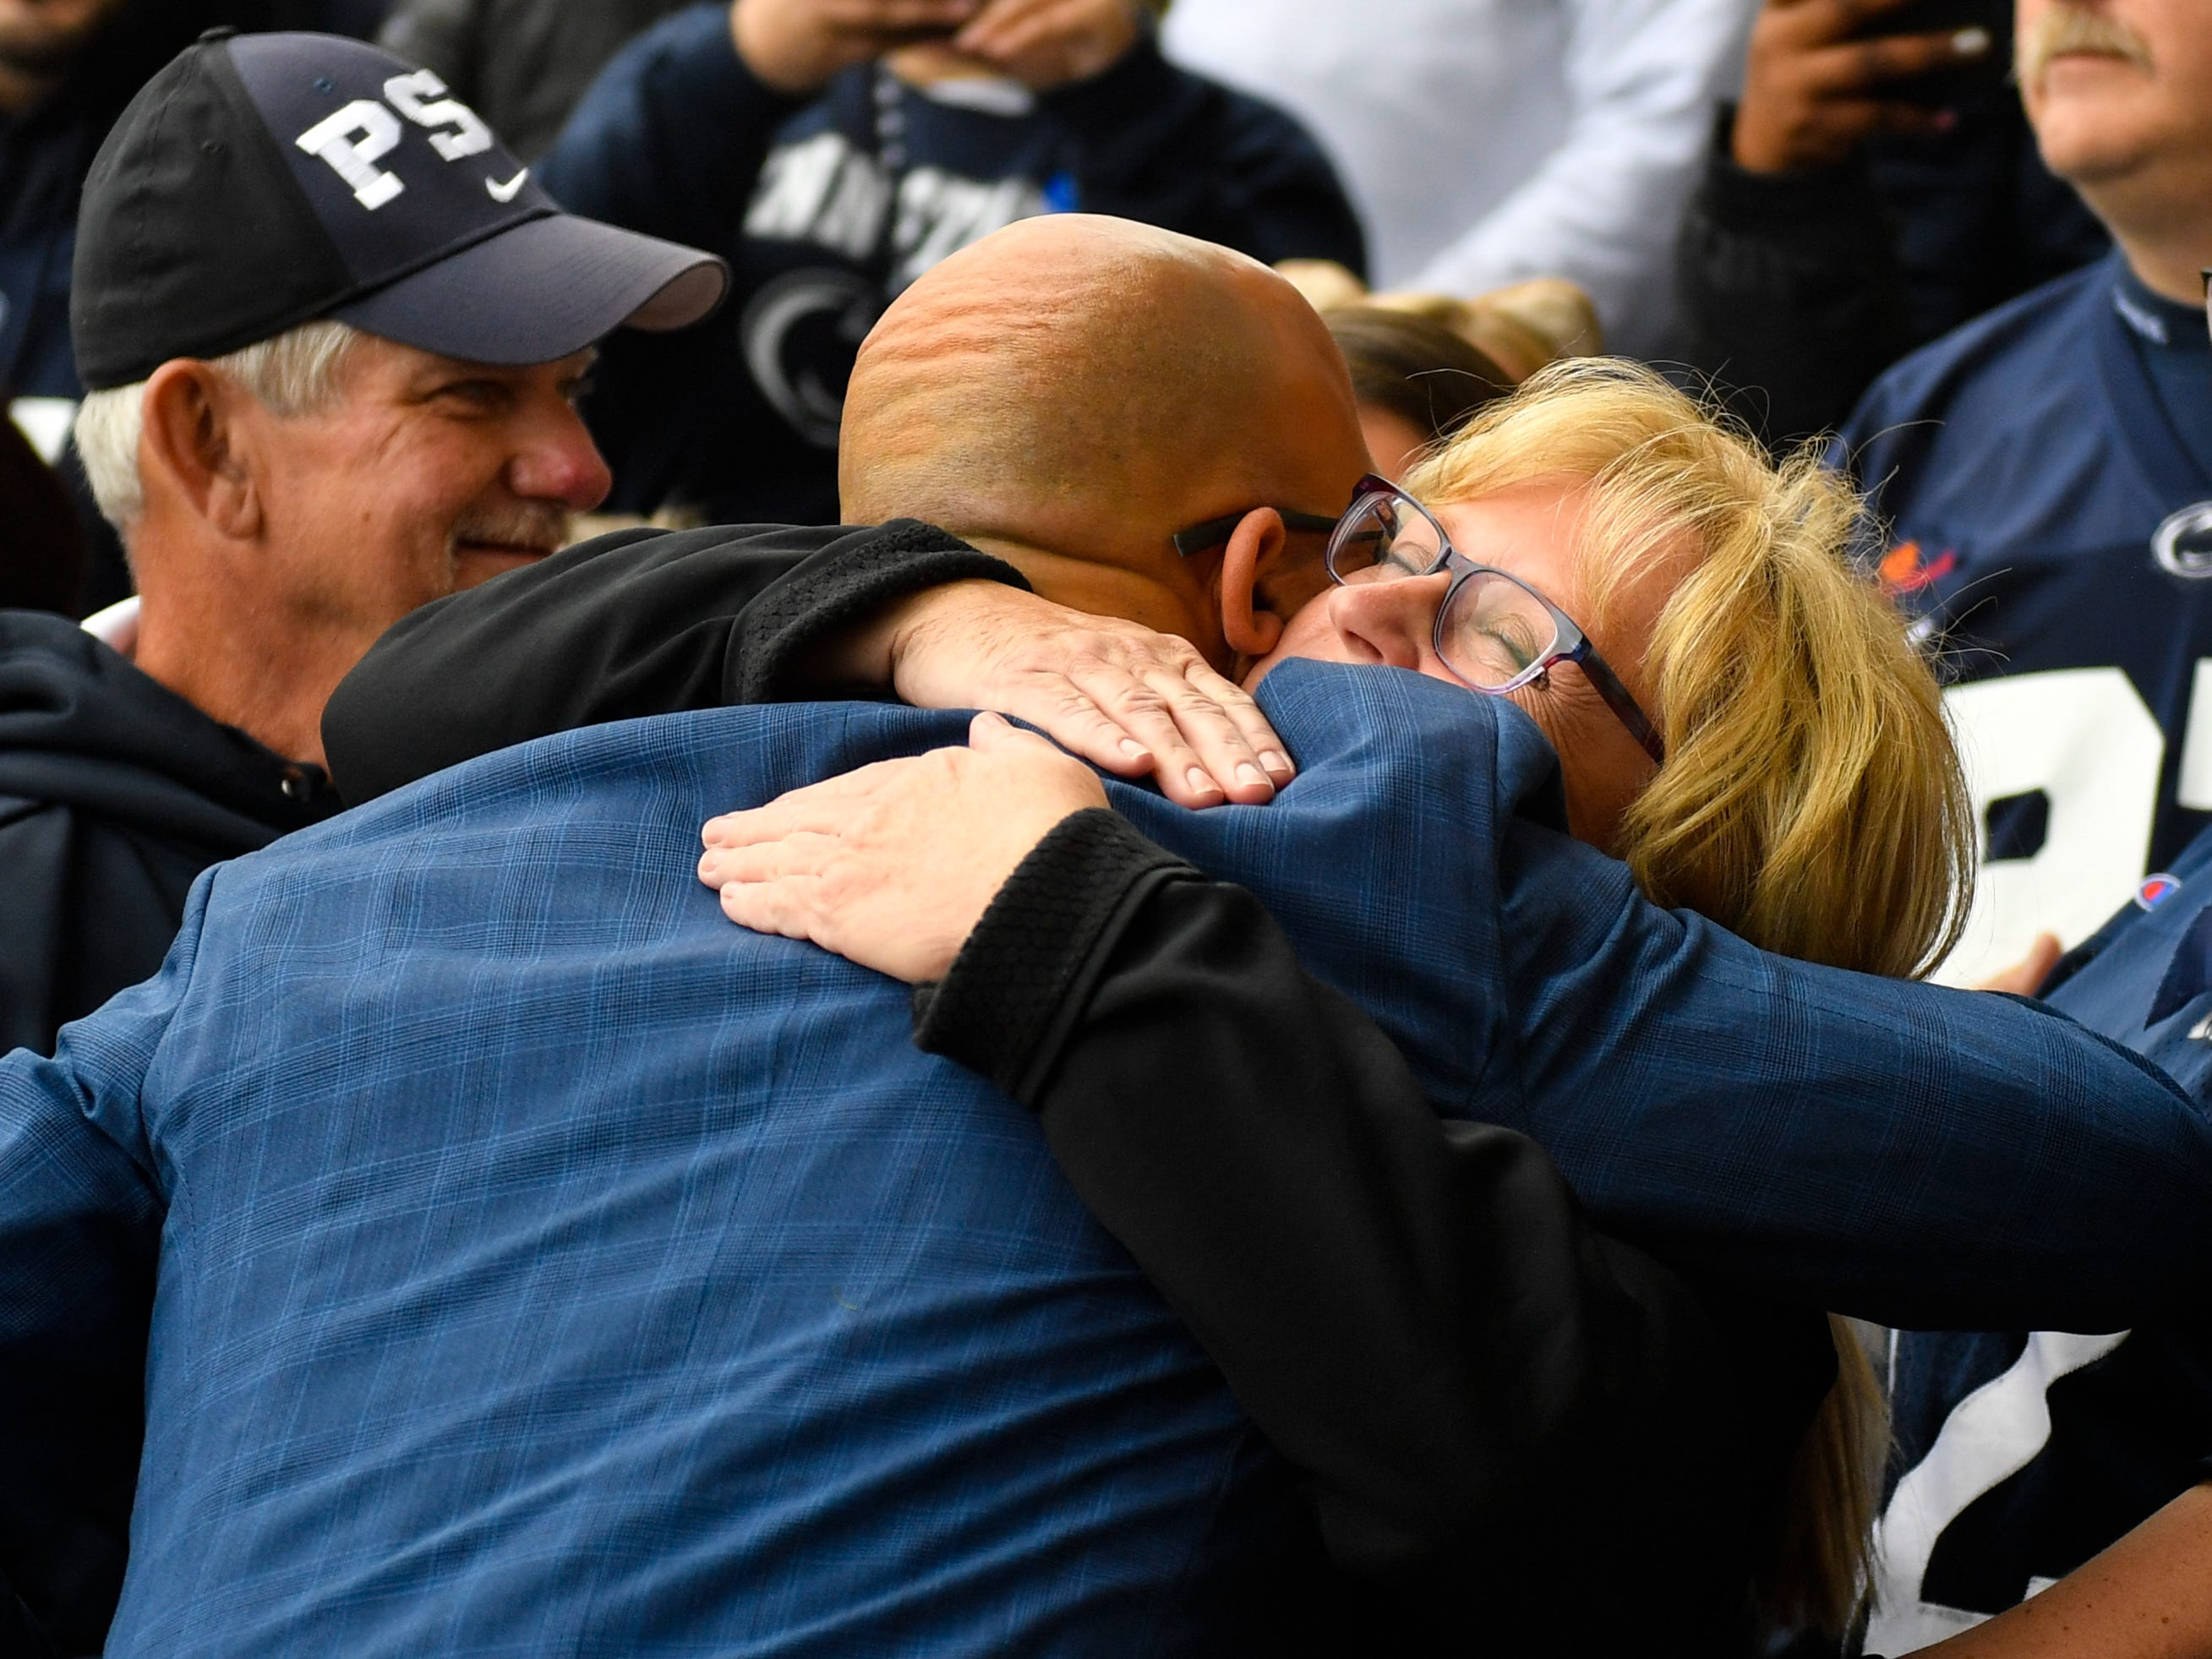 James Franklin hugs all parents in sight as he enters the stadium before the Penn State Homecoming game against Michigan State, October 13, 2018. The Nittany Lions fell to the Spartans 17-21.